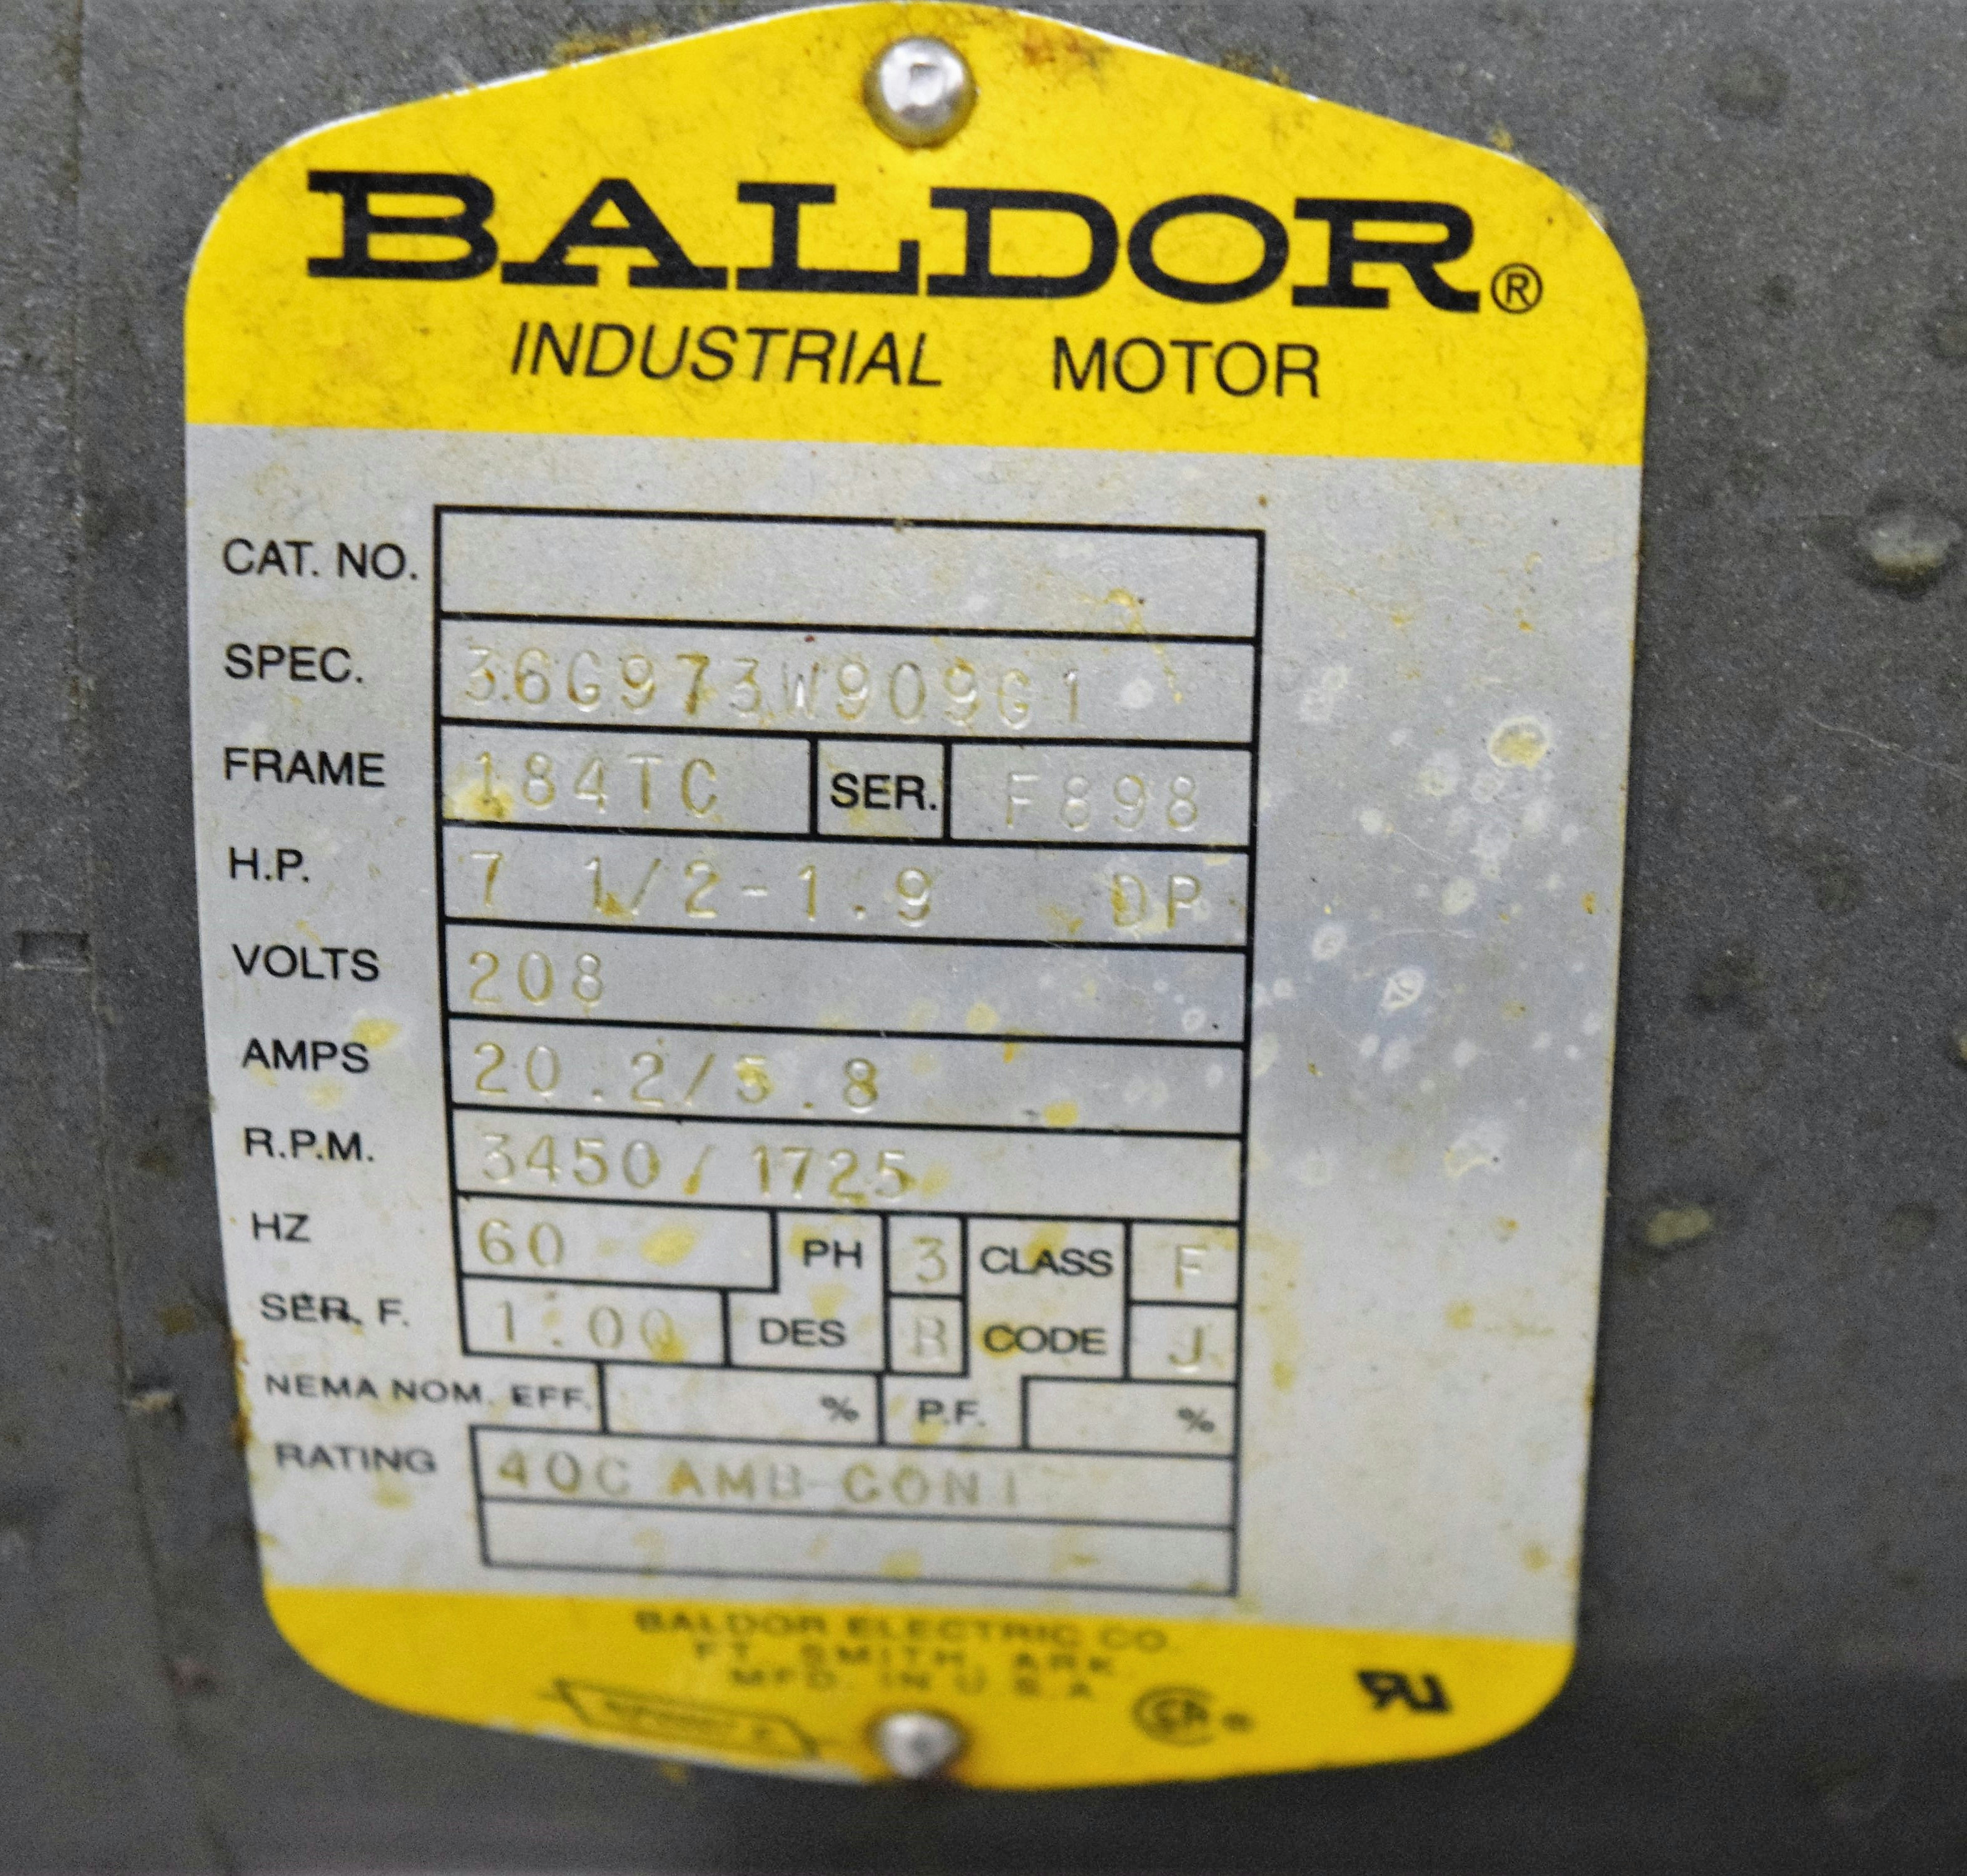 wiring diagram baldor 2 hp single phase motor    baldor    3    phase    industrial    motor    184tc  3450 rpm  1725     baldor    3    phase    industrial    motor    184tc  3450 rpm  1725